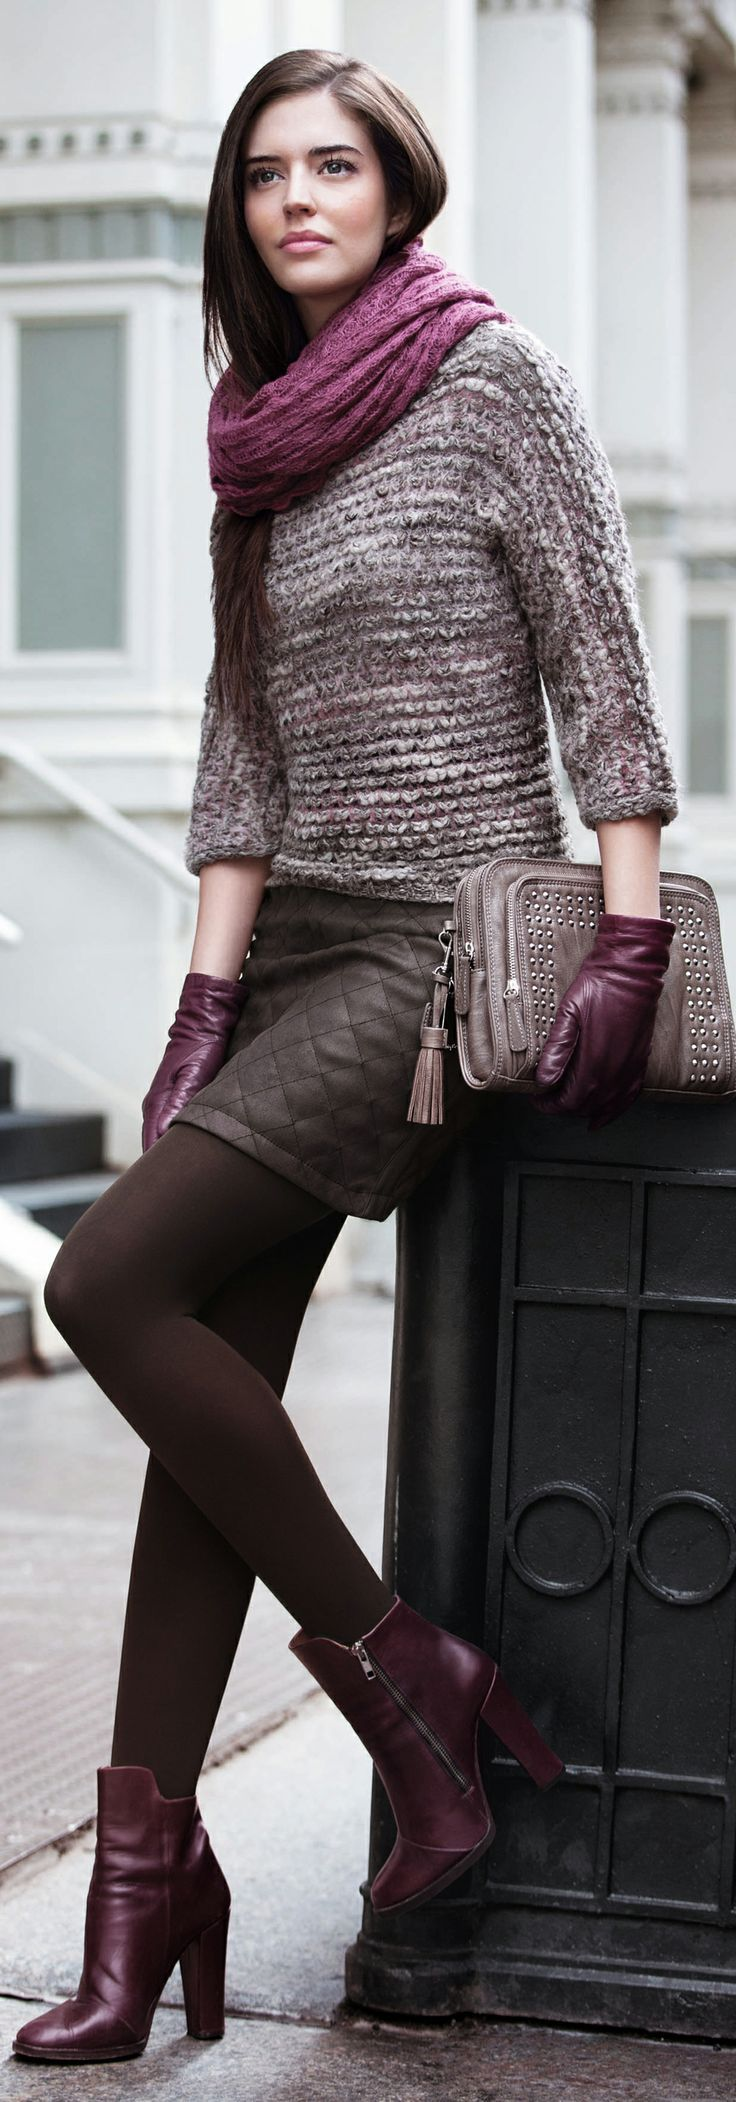 Fall street styles | Burgundy